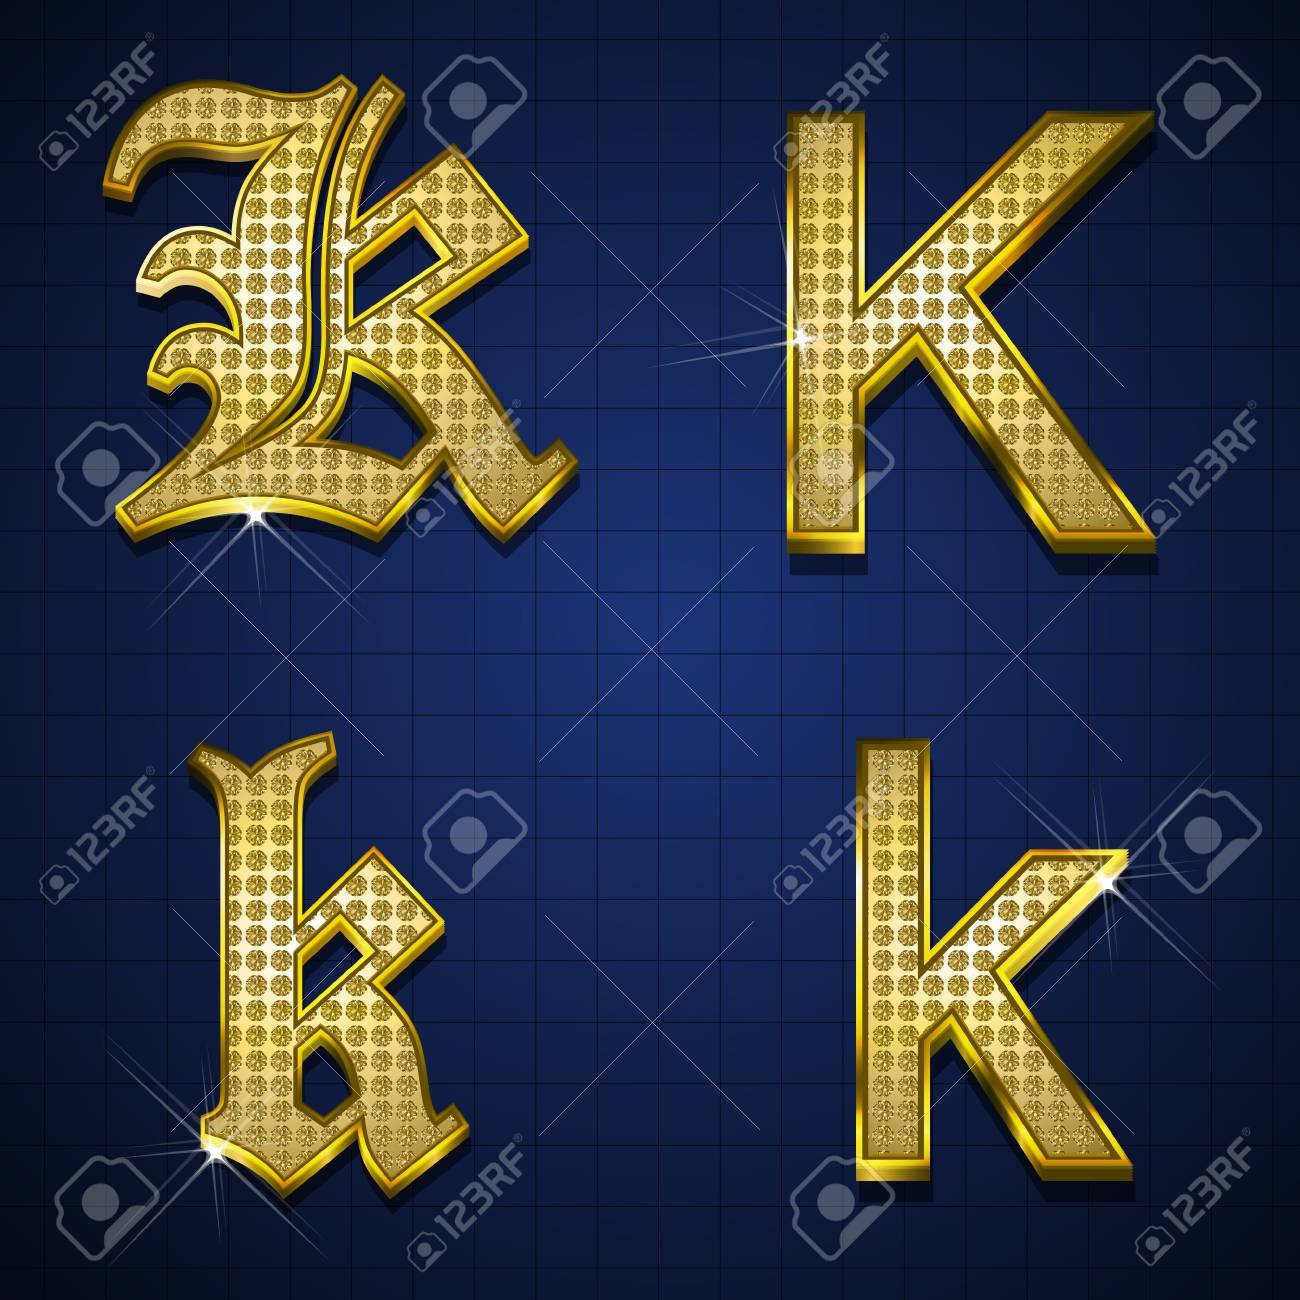 Luxurious alphabets designed with gold diamonds Stock Vector - 17598169